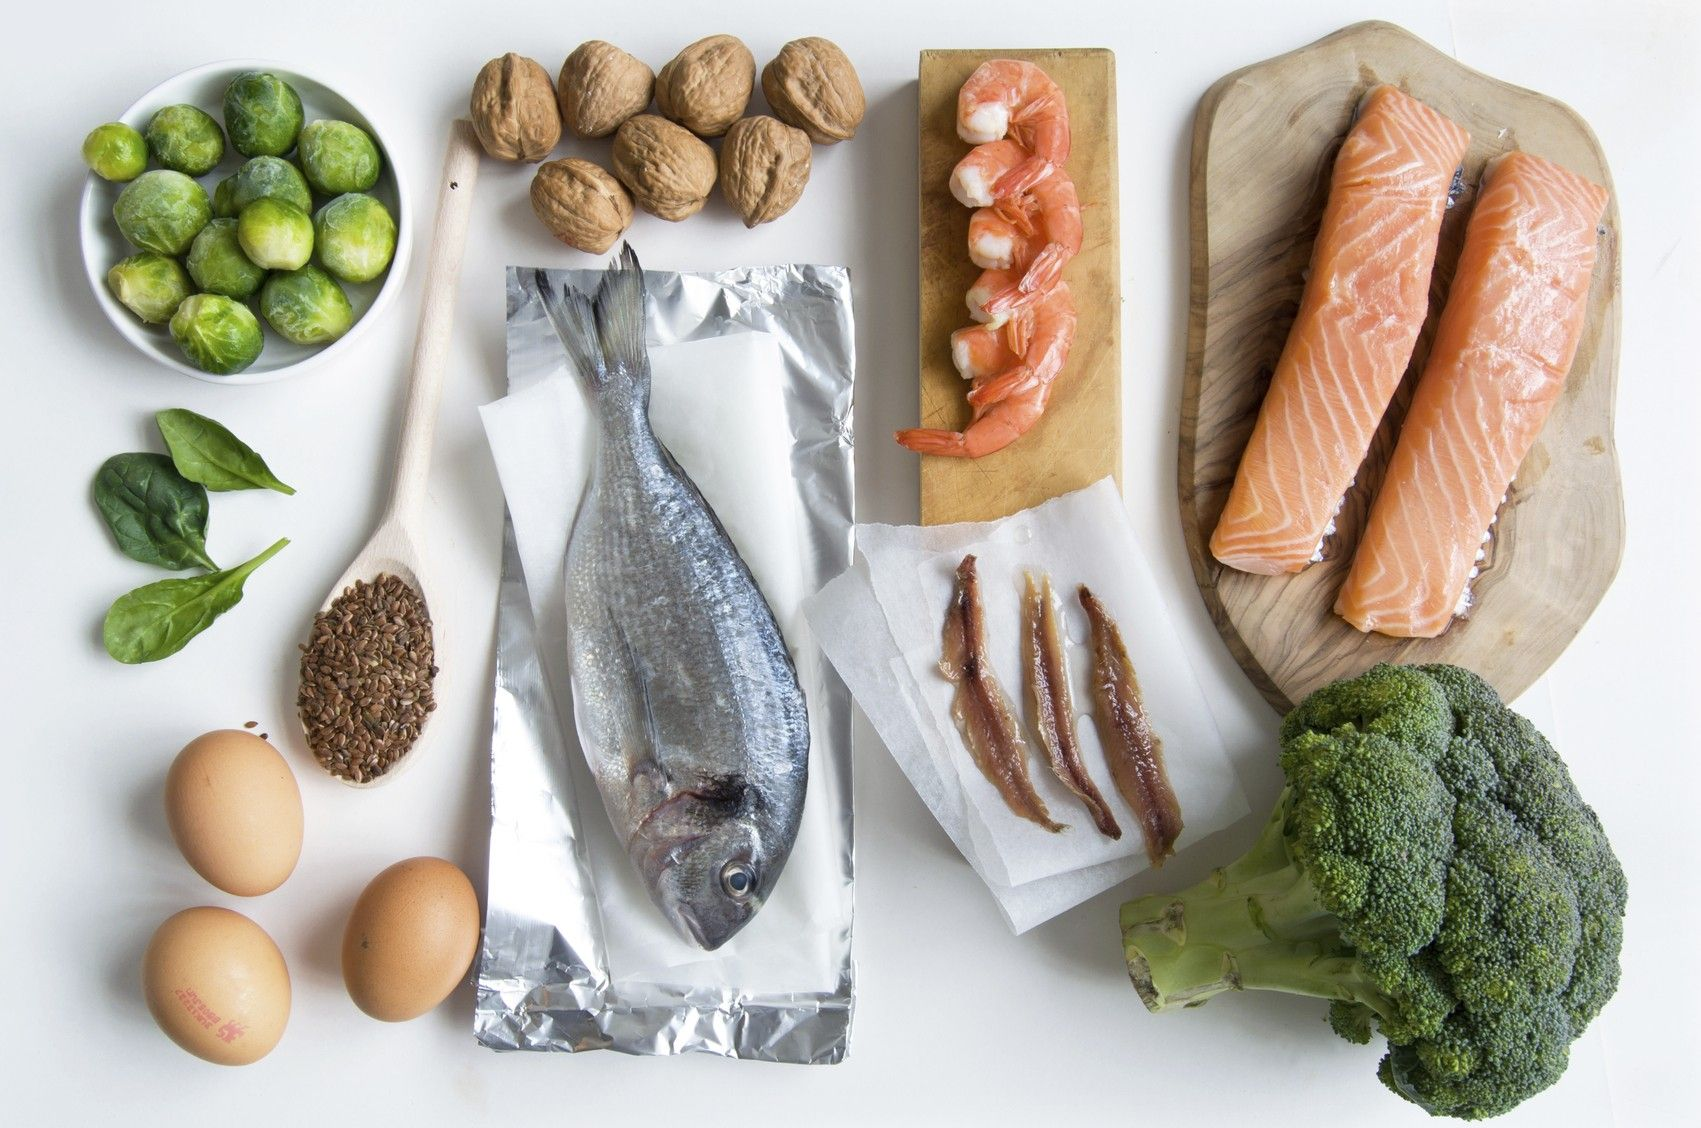 Include These Foods In Your Diet For Better Health